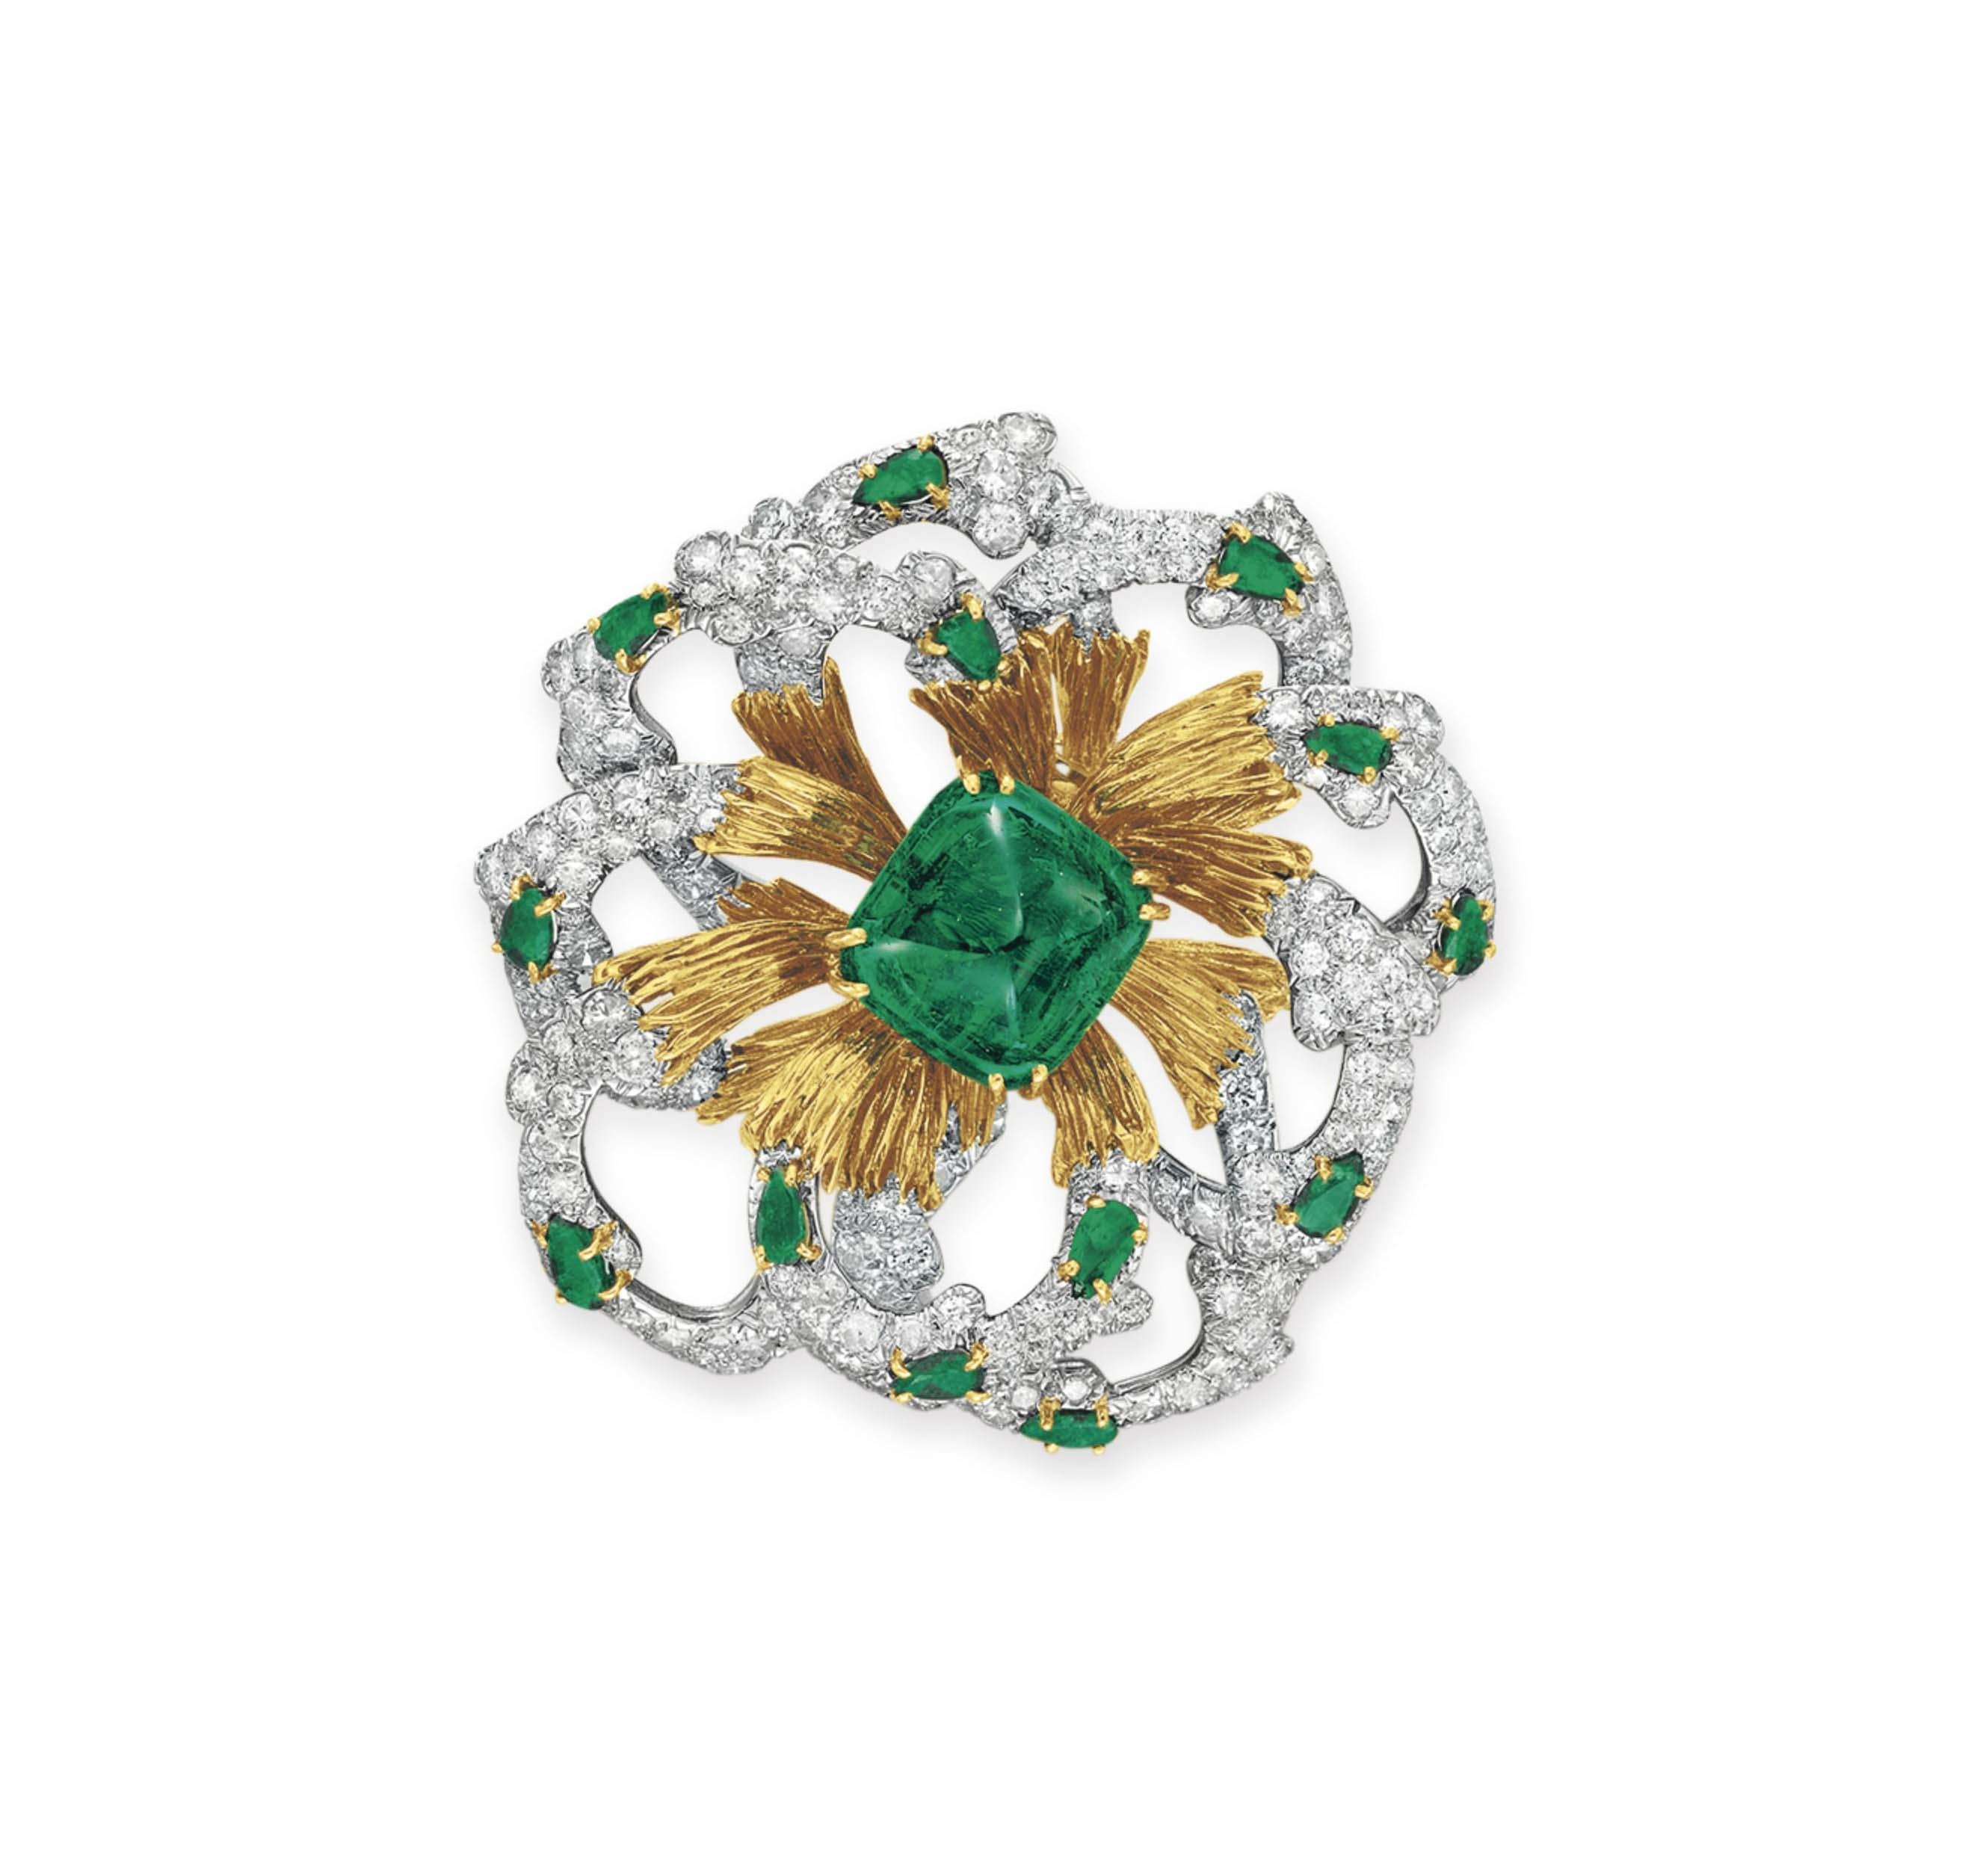 AN EMERALD, DIAMOND AND GOLD BROOCH, BY DAVID WEBB